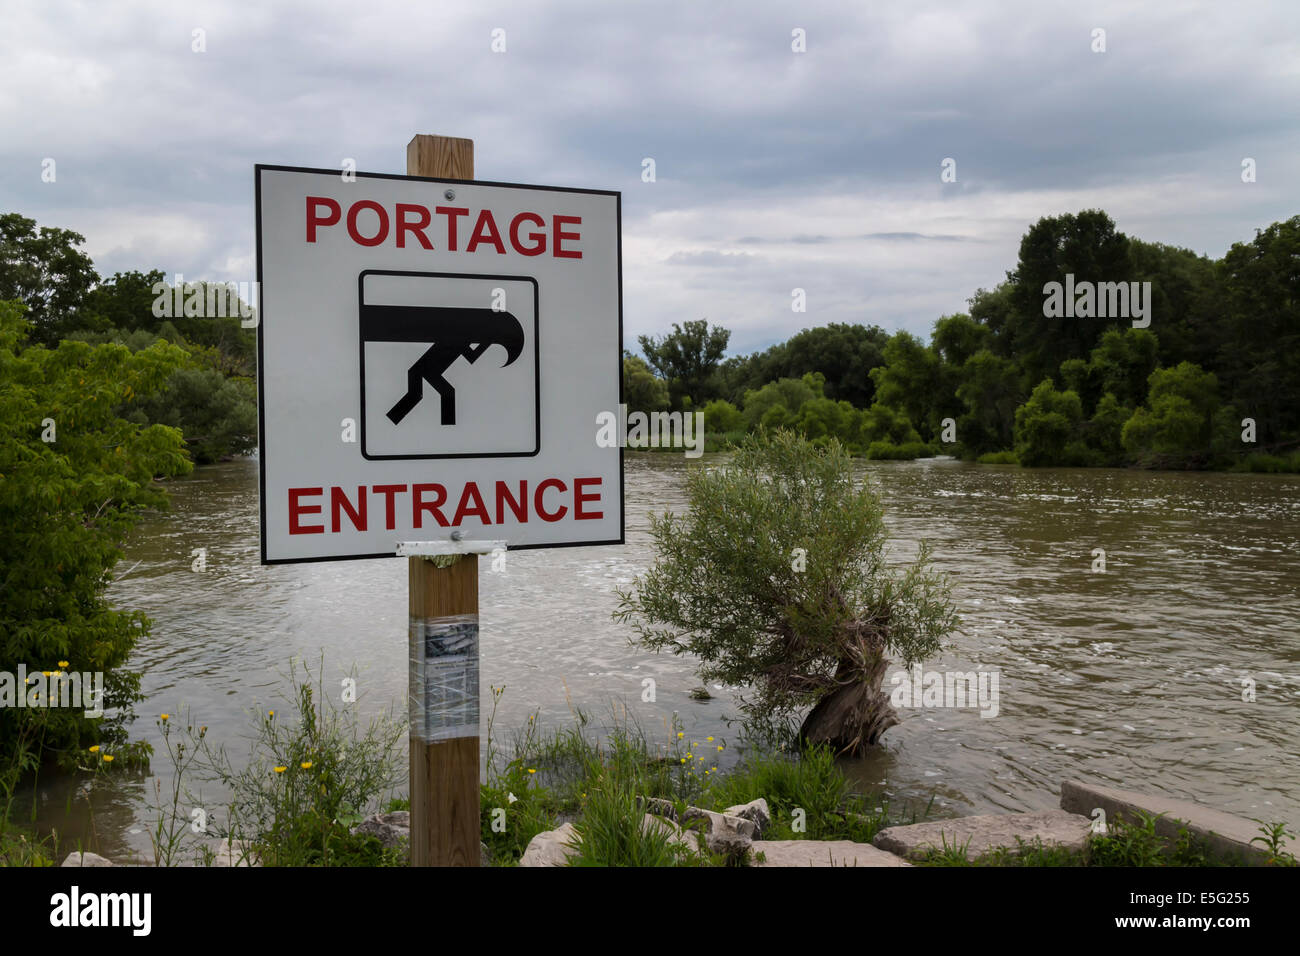 Sign identifying canoe access to river - Stock Image